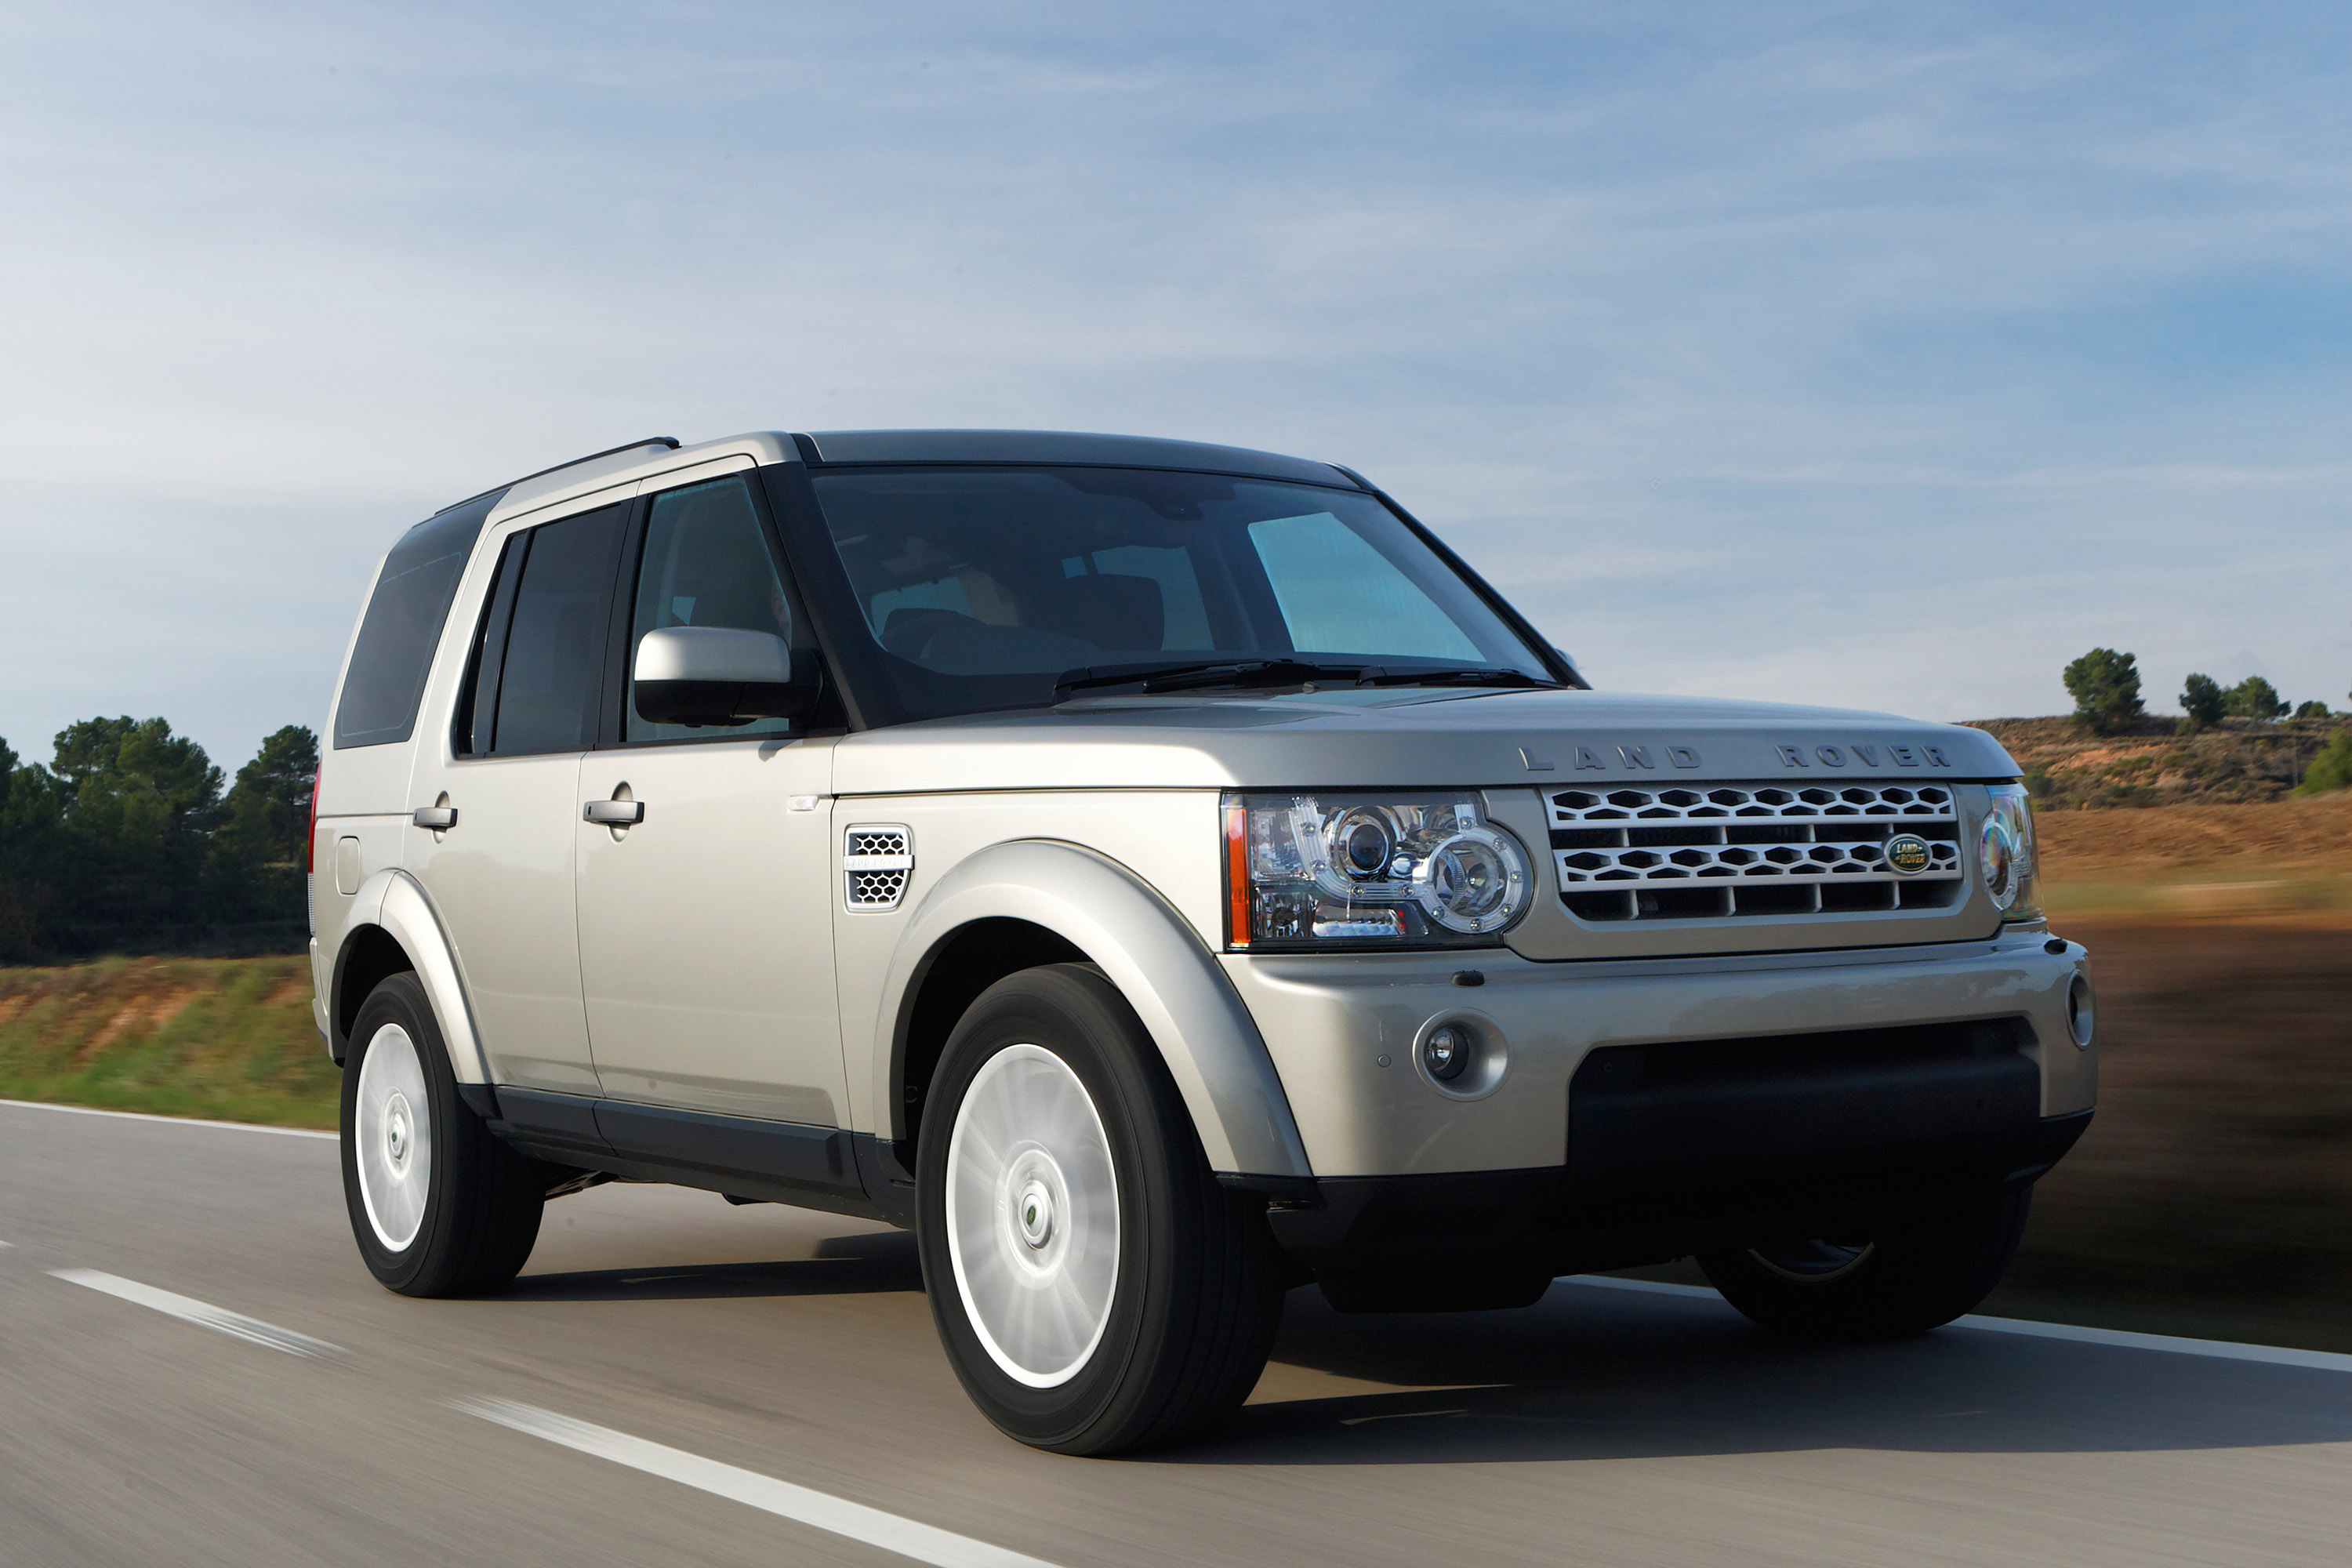 2010 Land Rover Discovery 4 Hd Pictures Carsinvasion Com